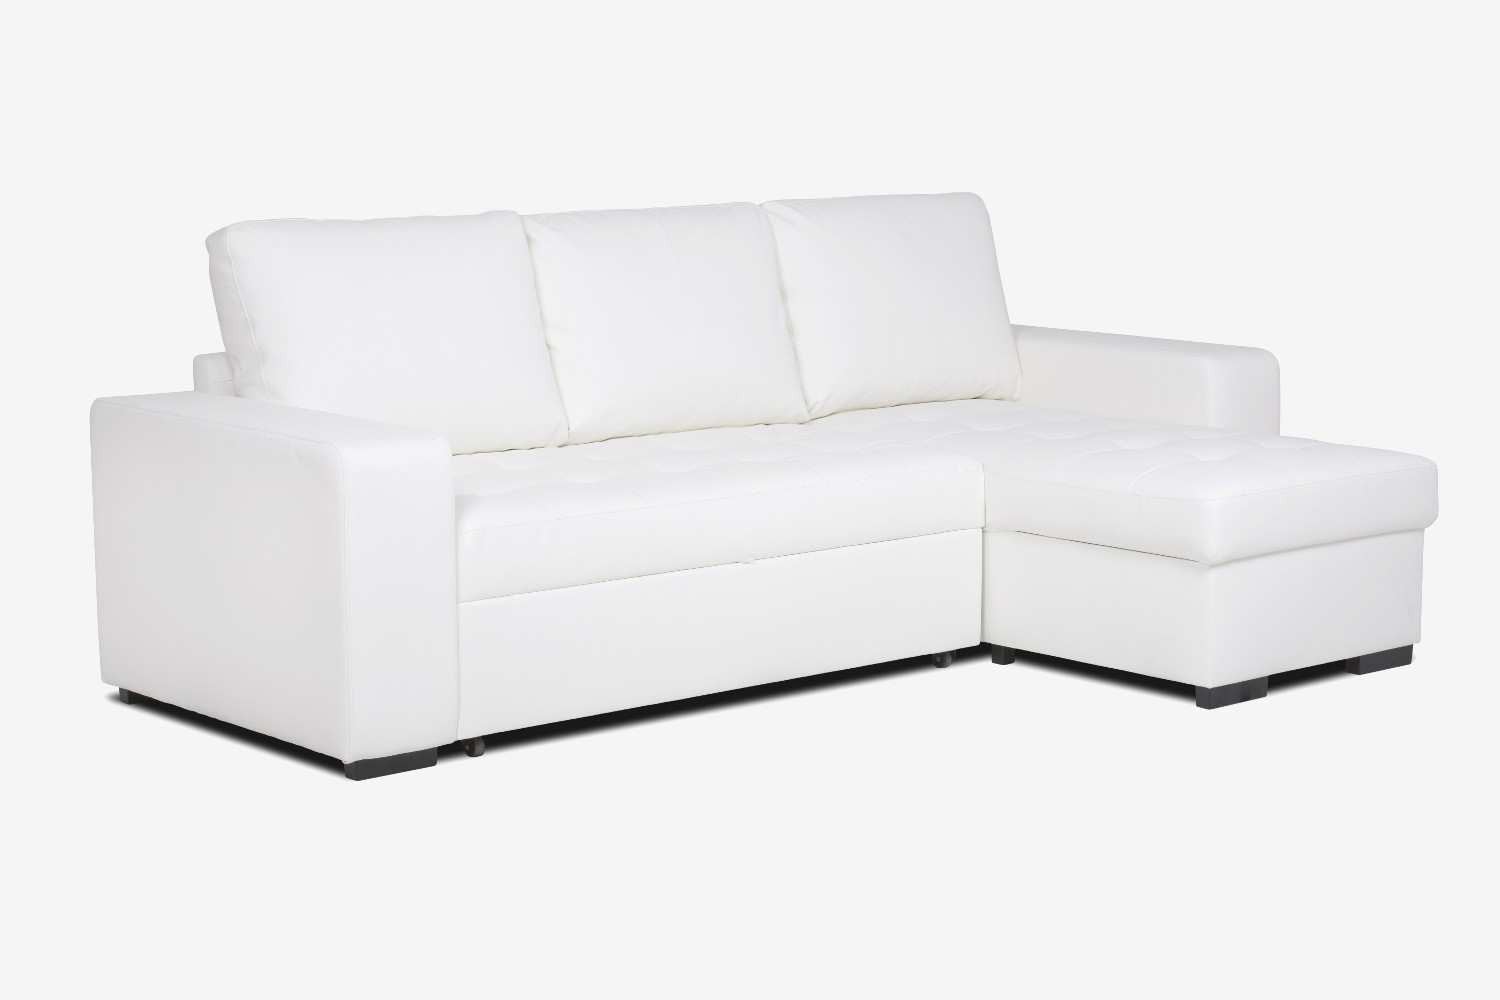 Sofa Cama Chaise Longue Contemporáneo Nuevo sofa Cama Chaise Longue Conforama Of 48  Magnífica sofa Cama Chaise Longue